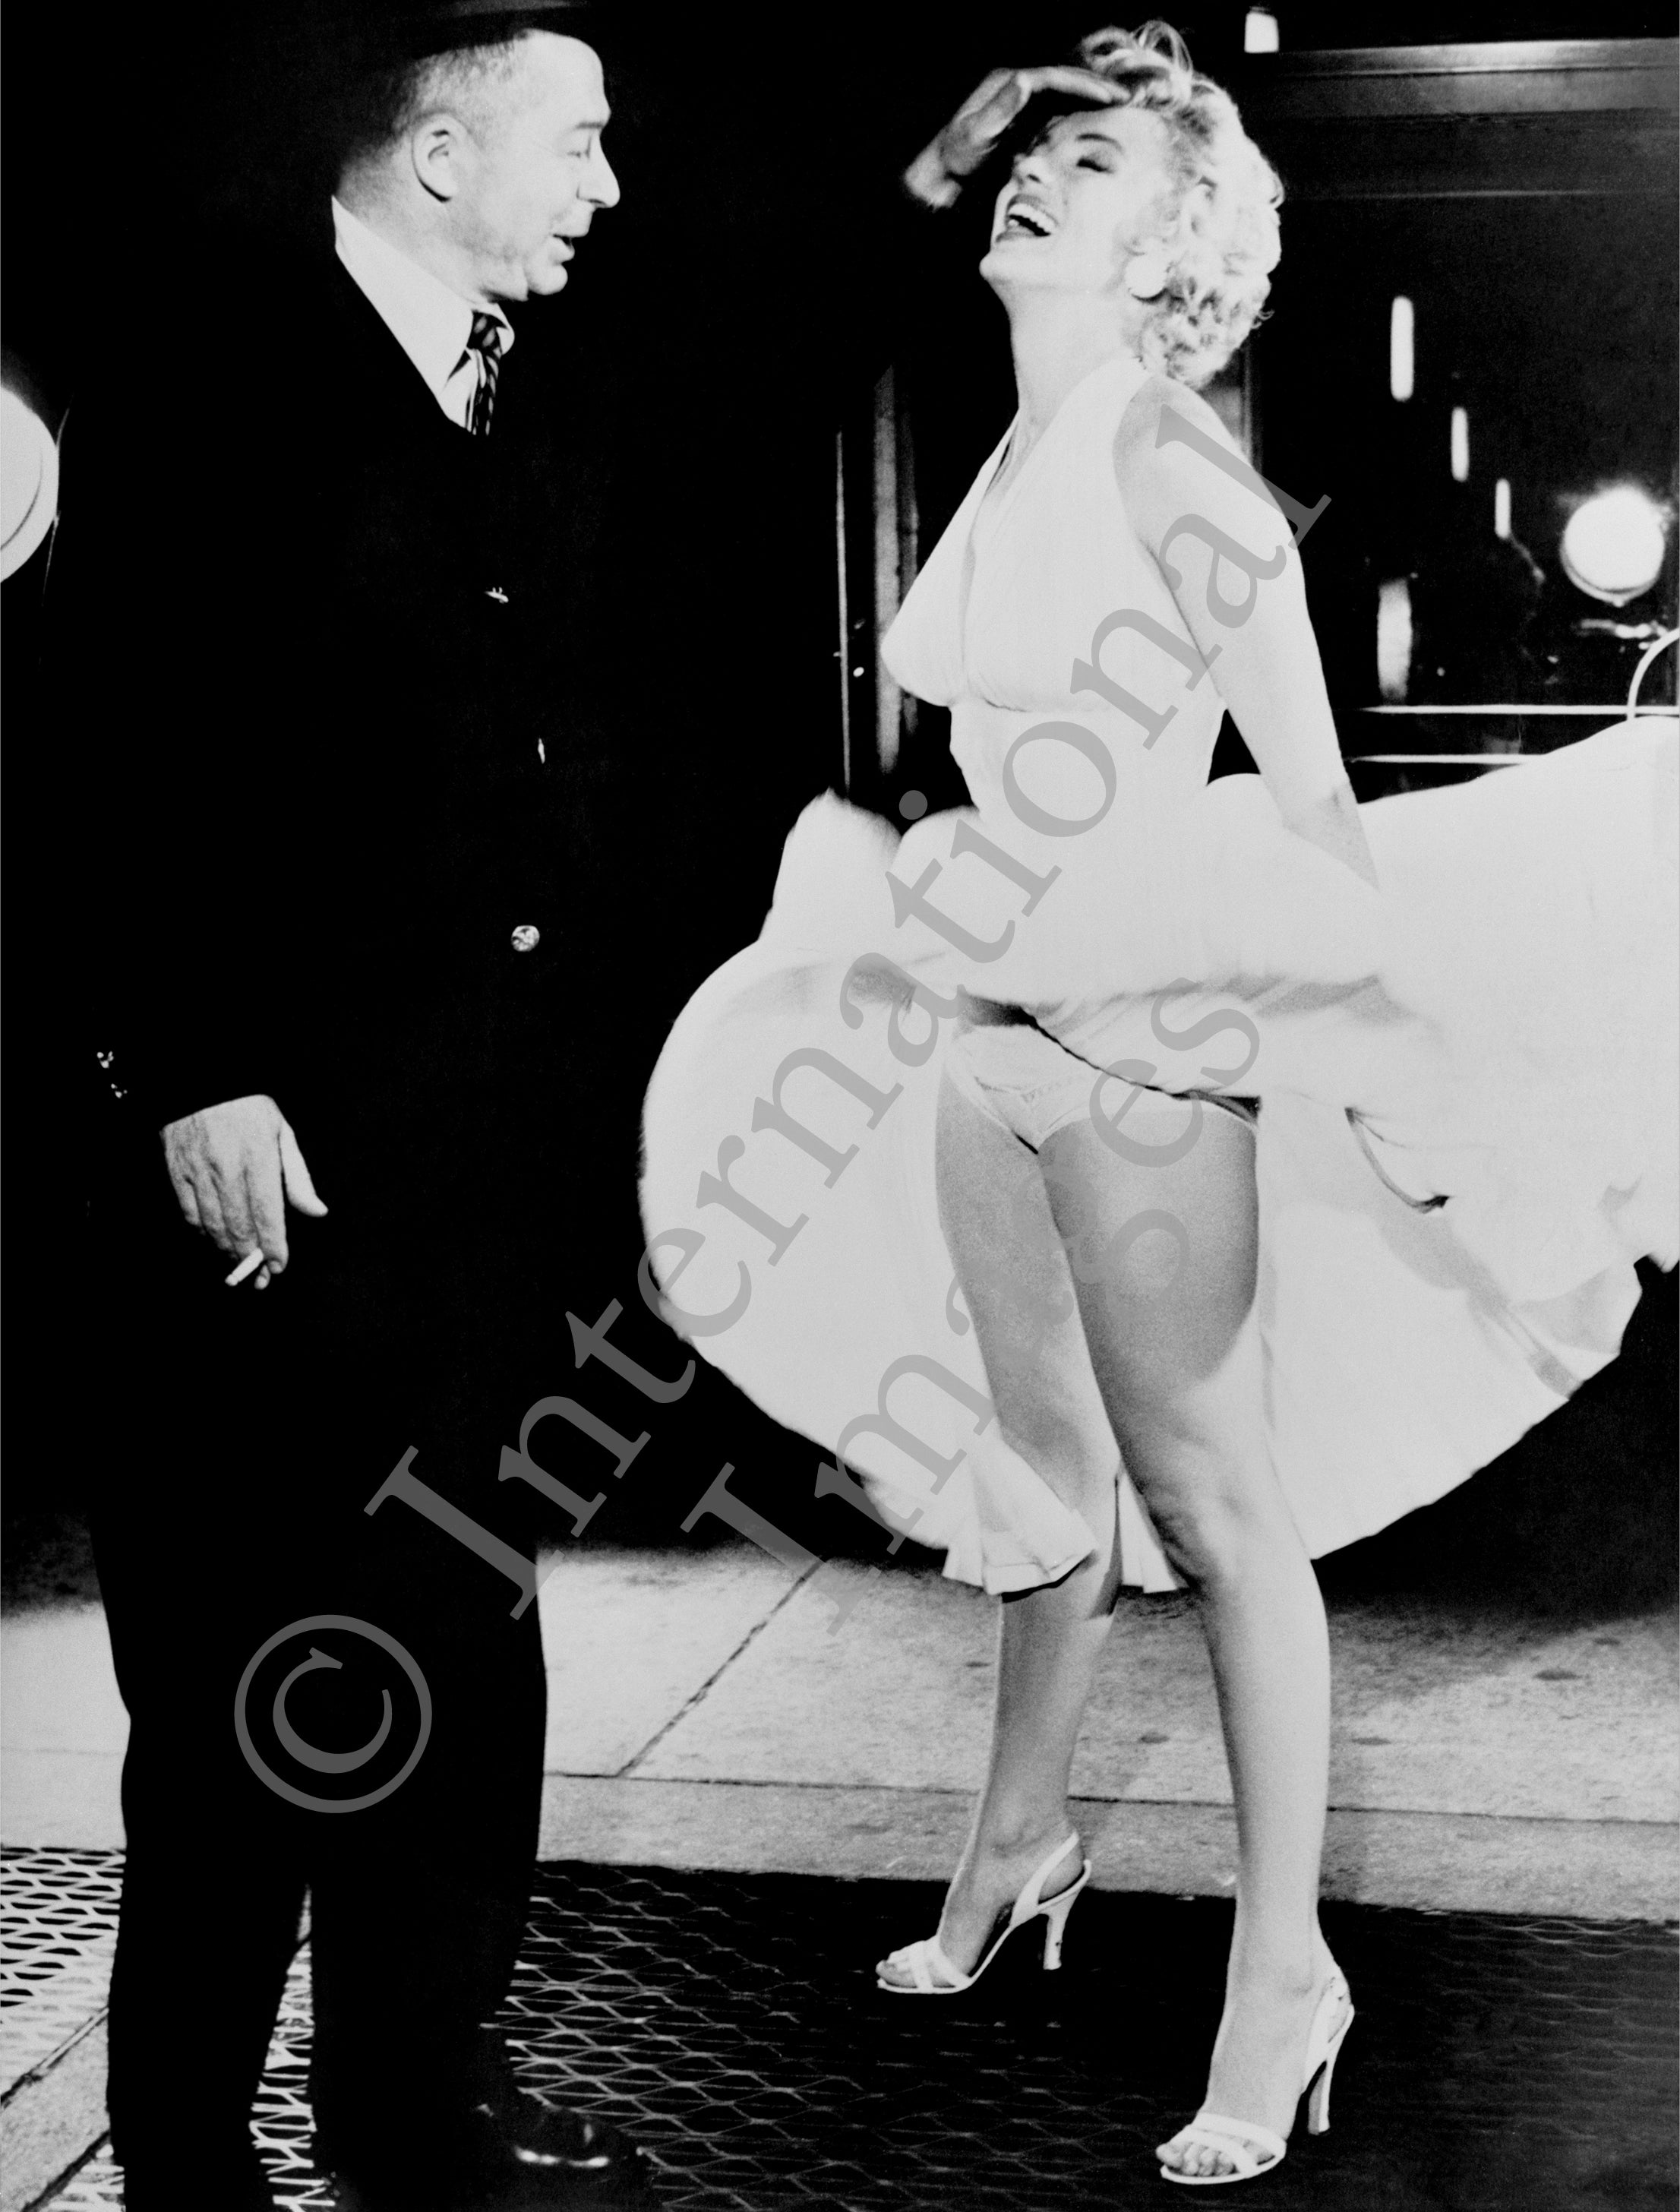 Marilyn Monroe's skirt blowing up with director Billy Wilder (0024)